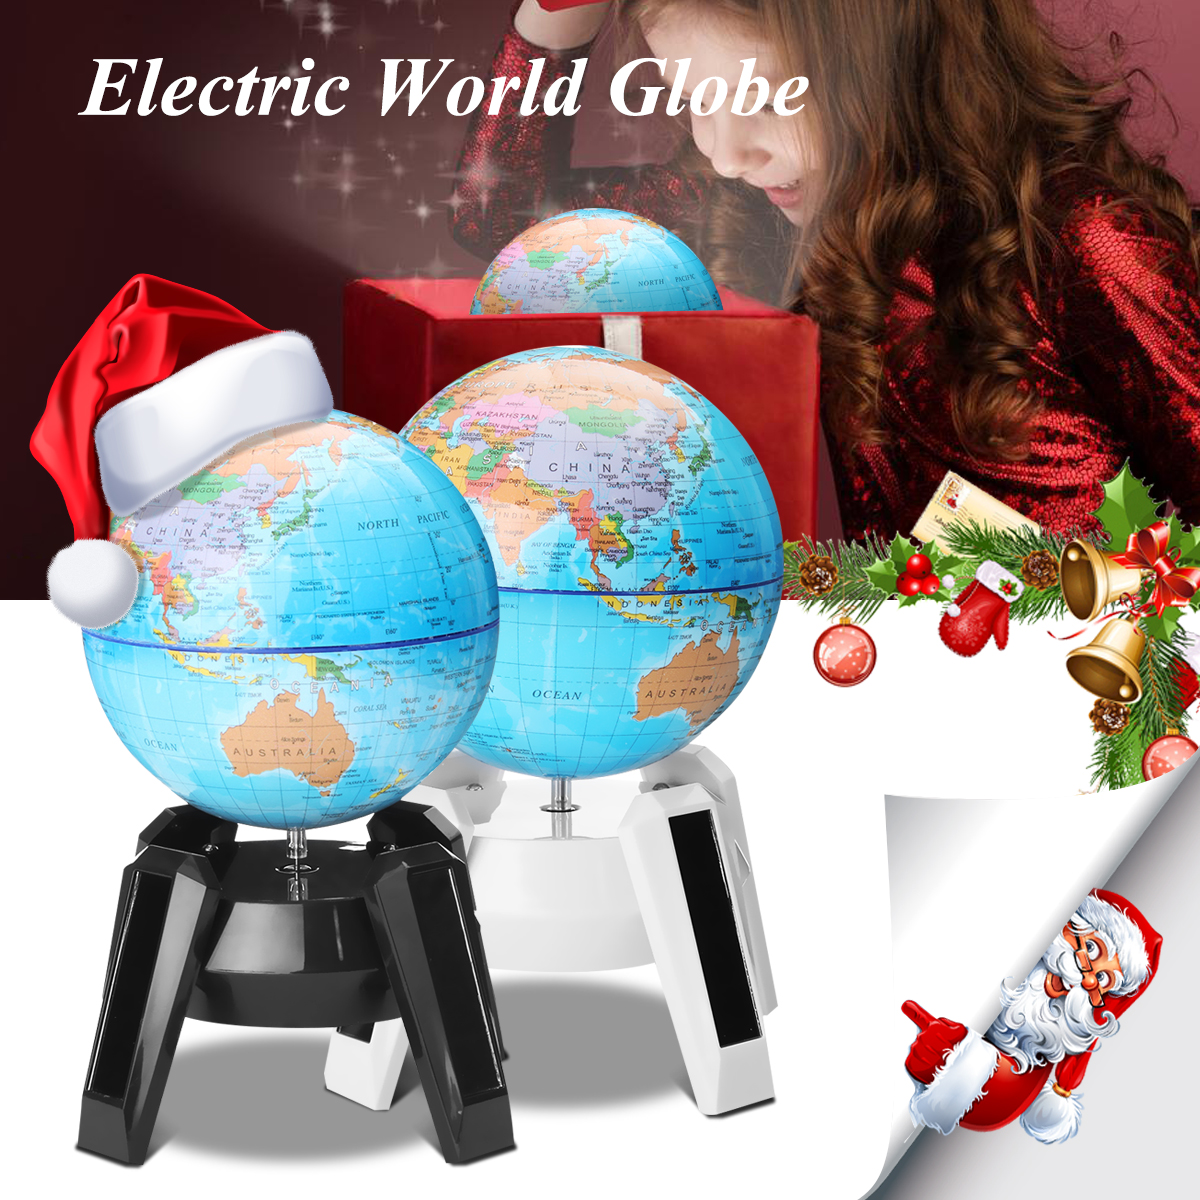 Atlas Decoration Solar Power World Globe Led Rotating Swivel Map Of Earth Atlas Geography Desktop Political Globe Home Decoration Christmas Gift Kid Education